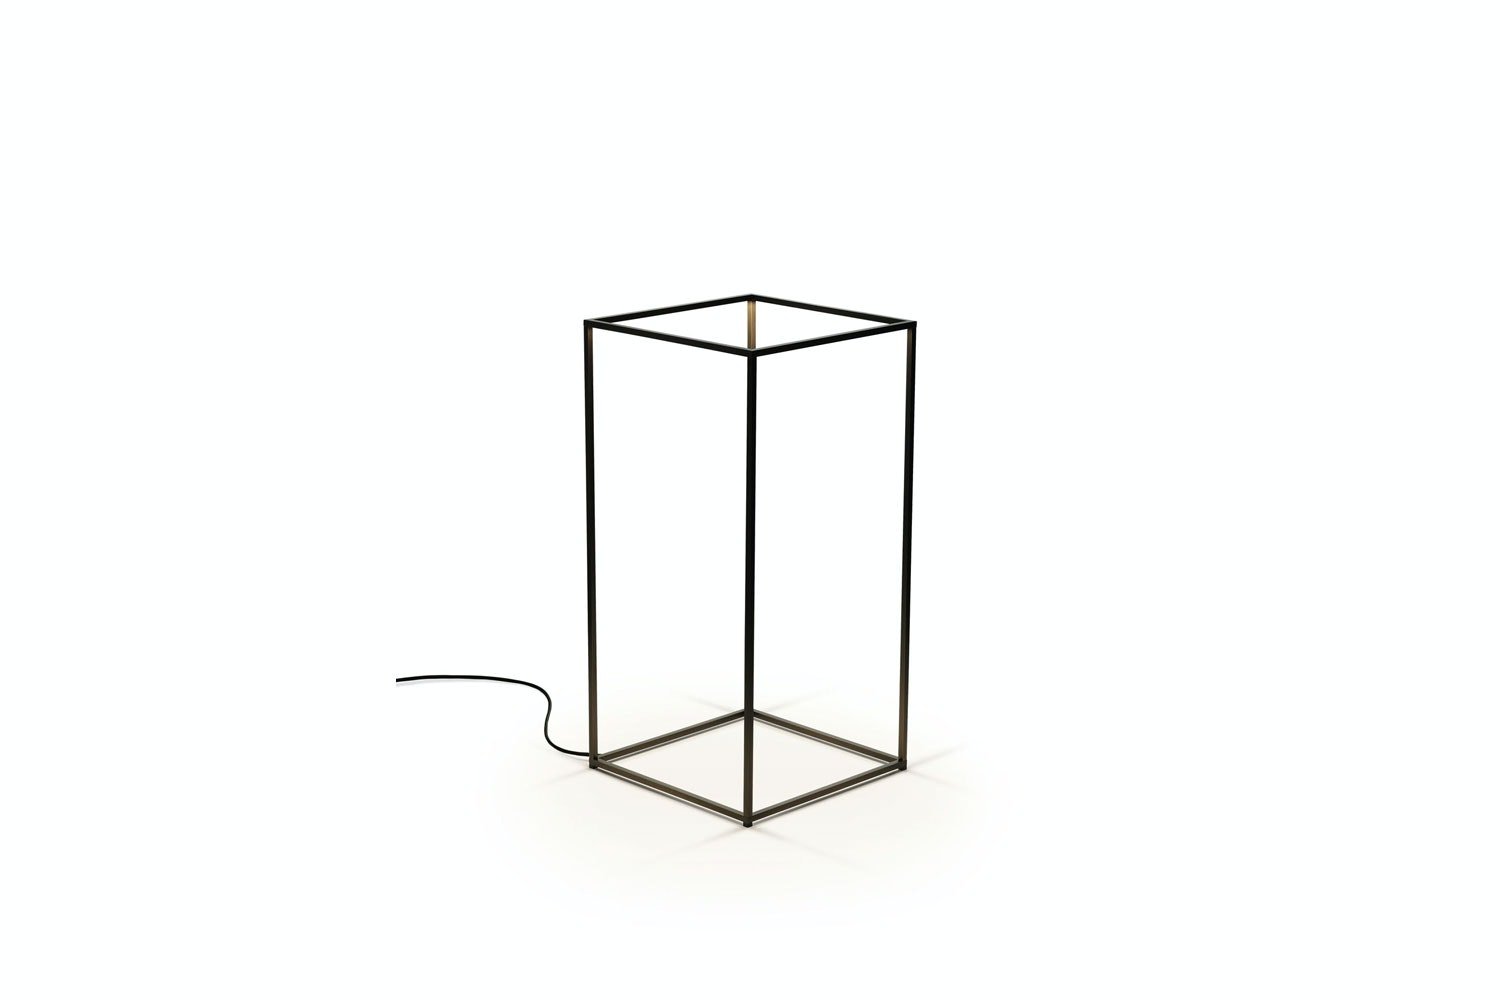 Ipnos by Nicoletta Rossi and Guido Bianchi for Flos